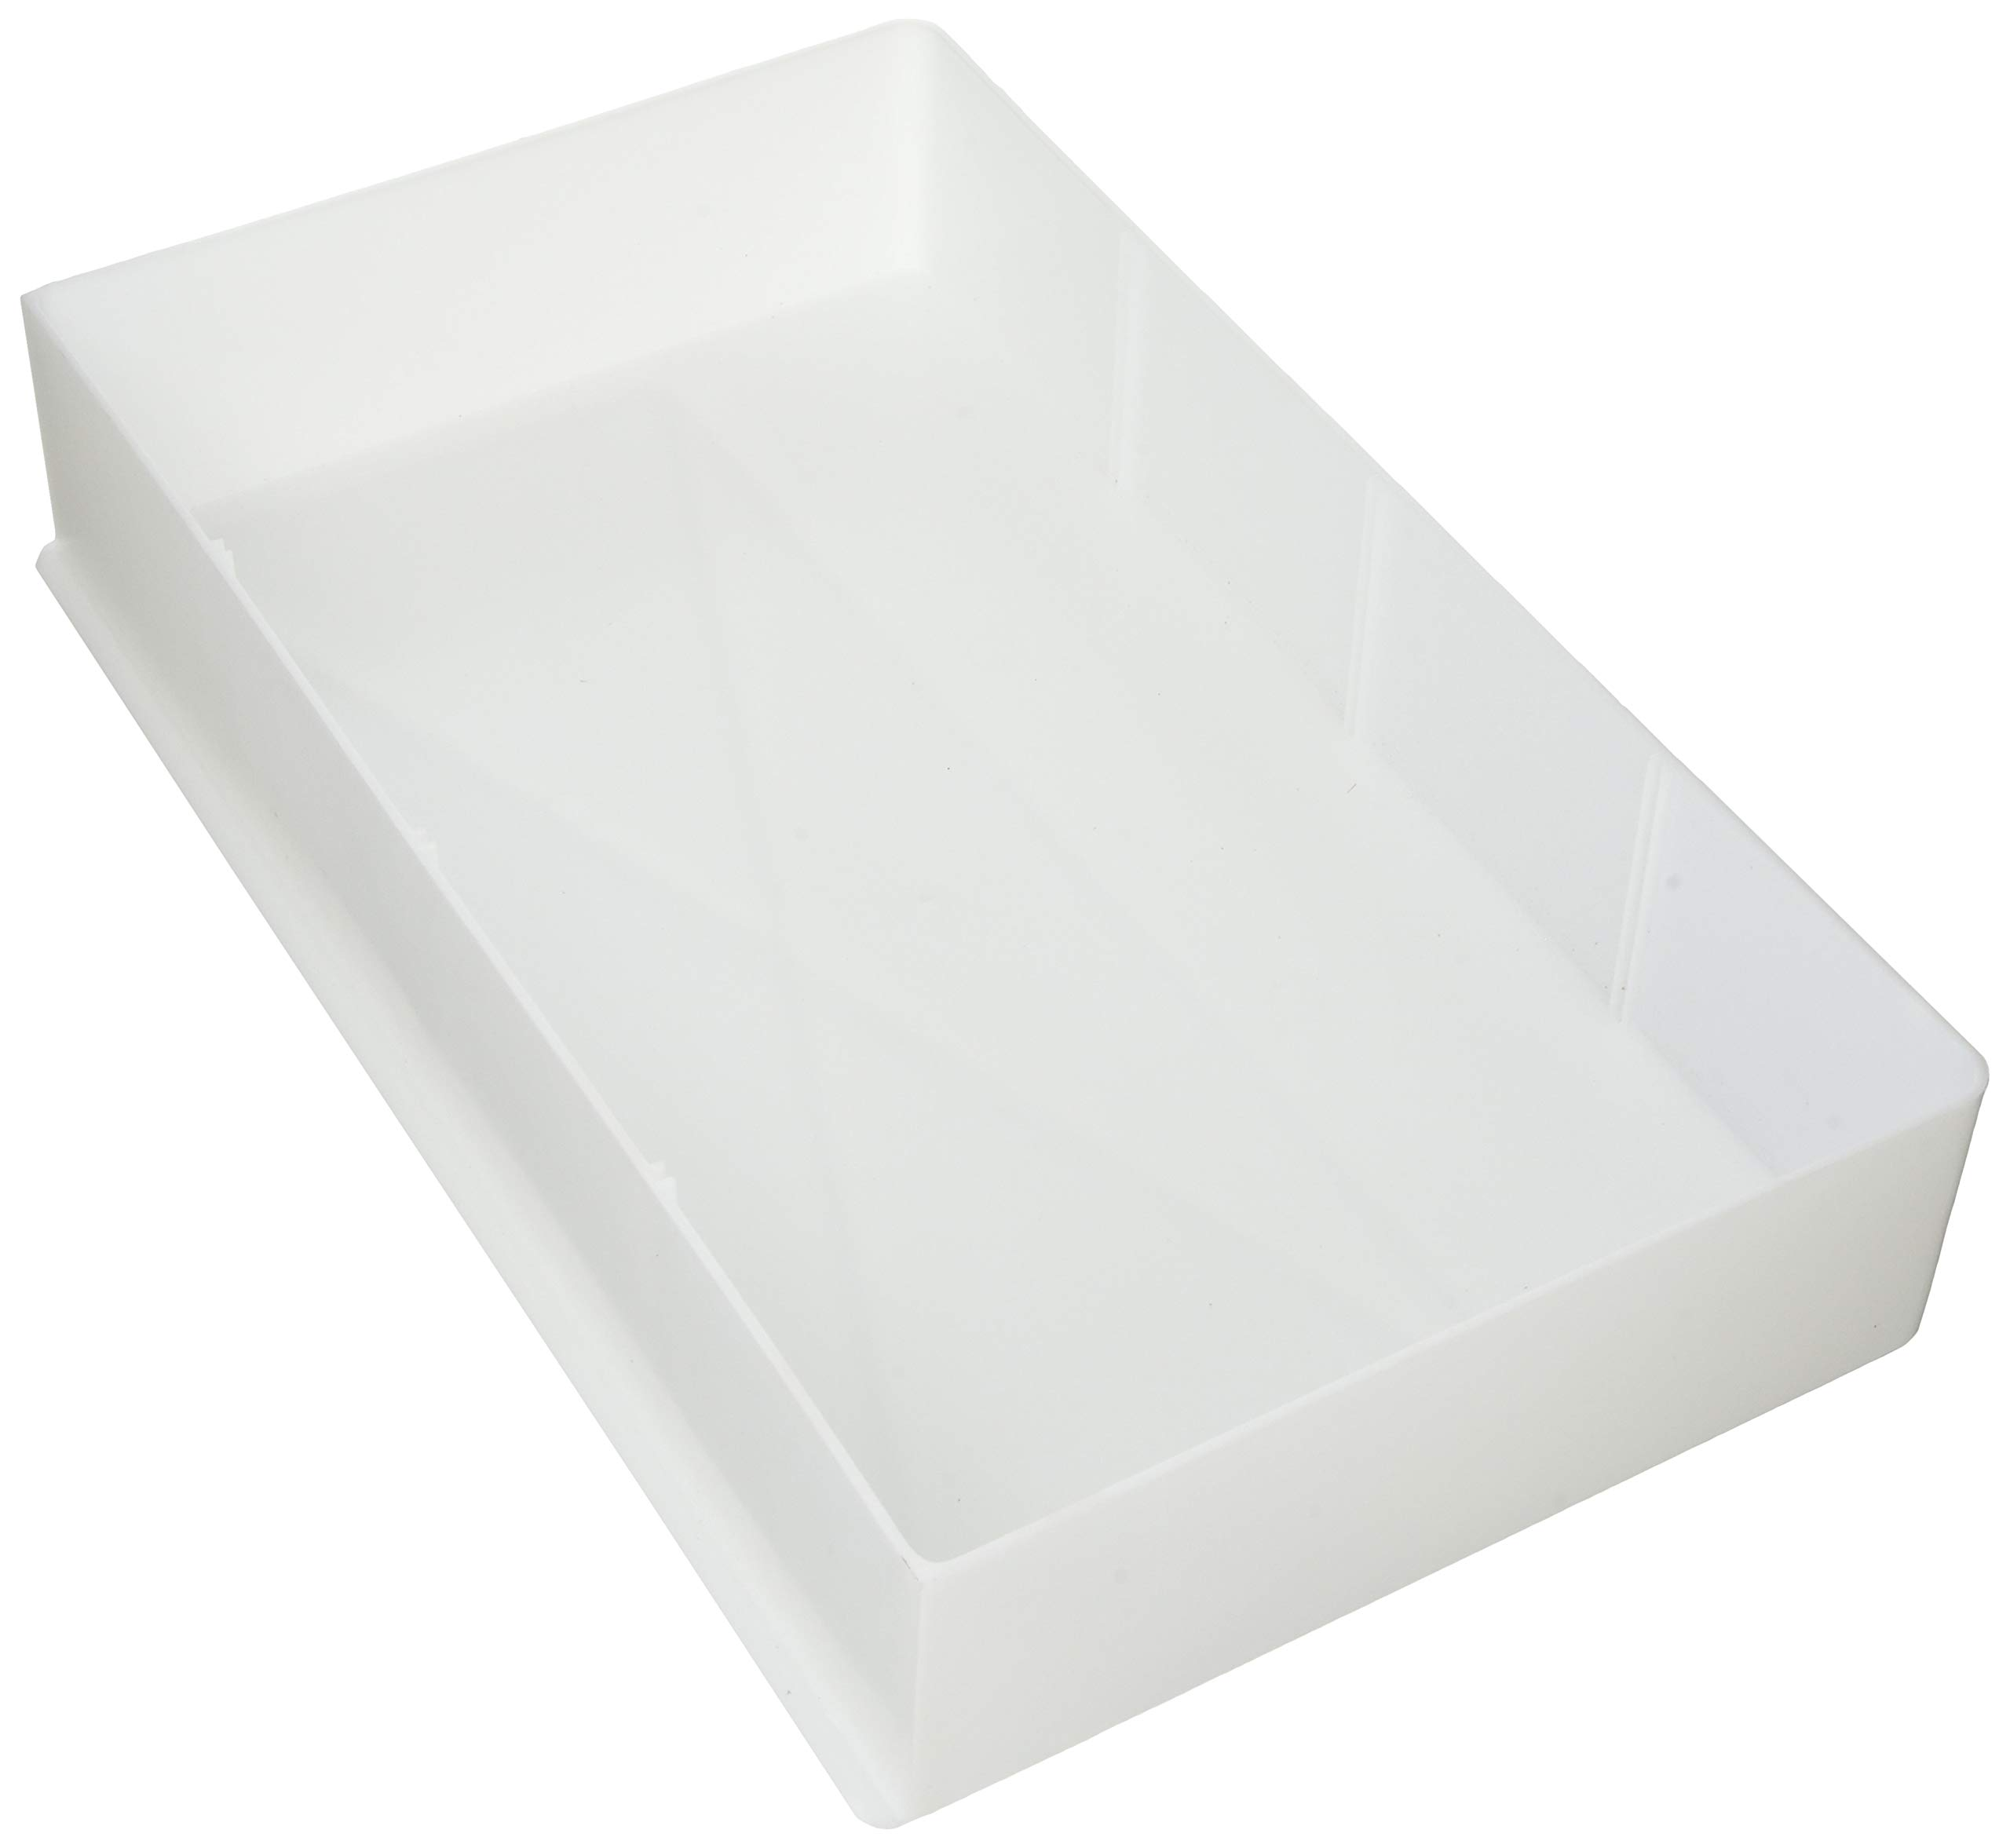 Weather Guard 911 Accessory Tray 19-Inch by Weather Guard